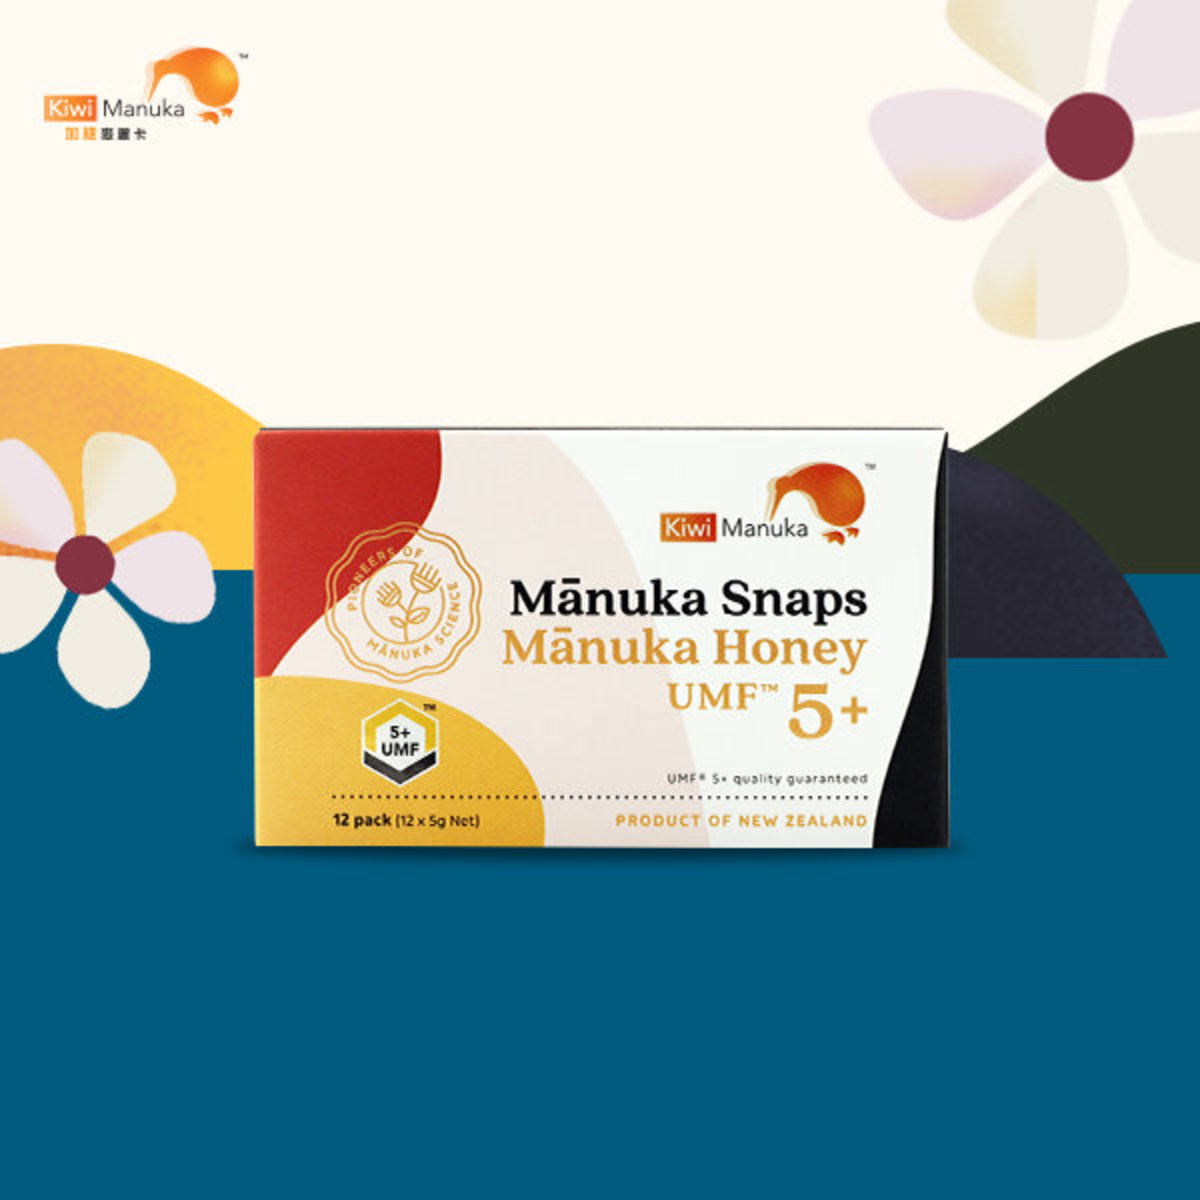 UMF5+ / 83+ MGO SNAP PACKS - Travel (60g) <New Packaging>